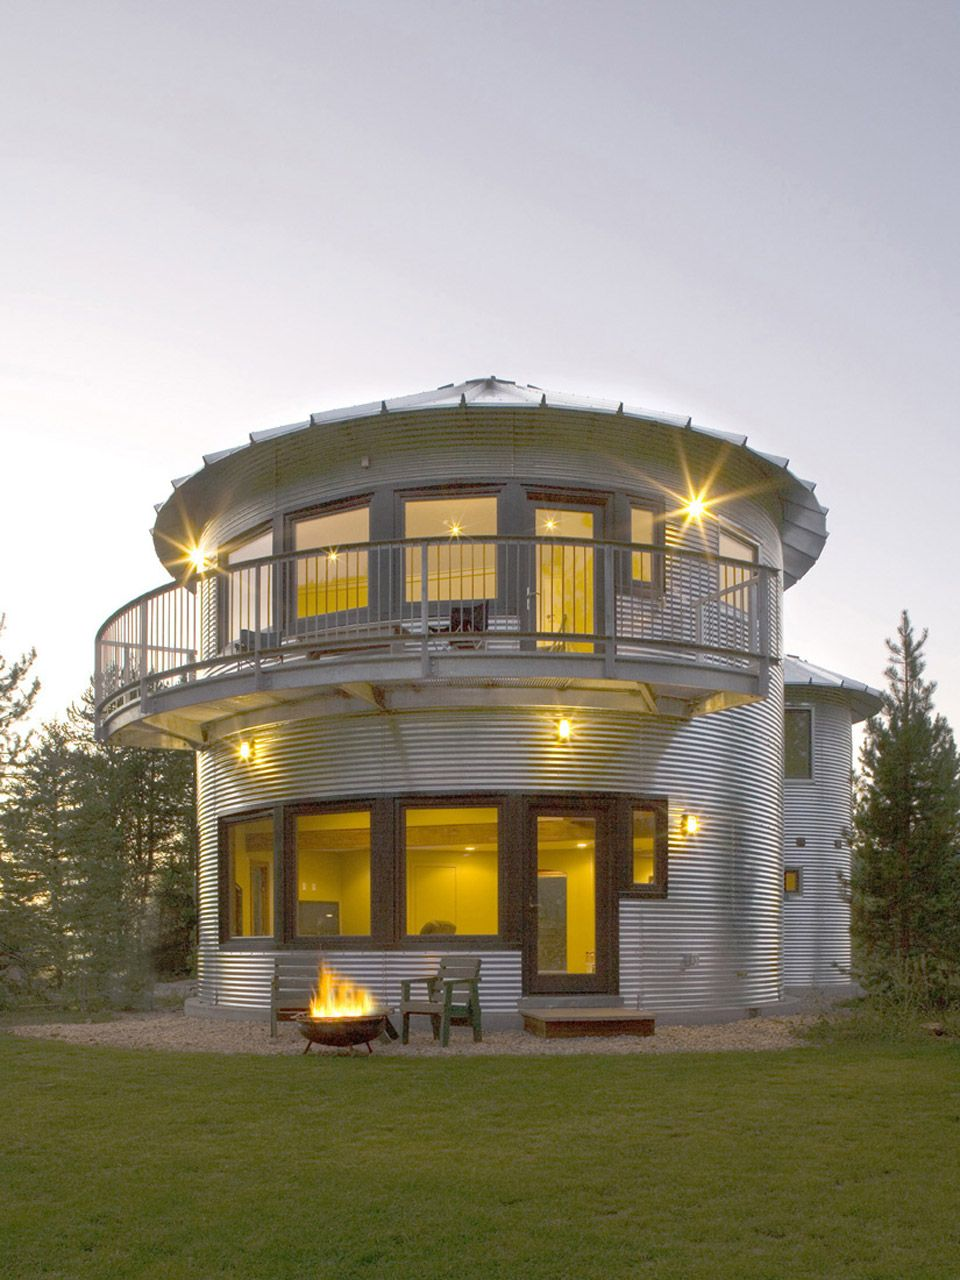 Awesome grain silo house - love the cubby bunks, the balcony and windows!